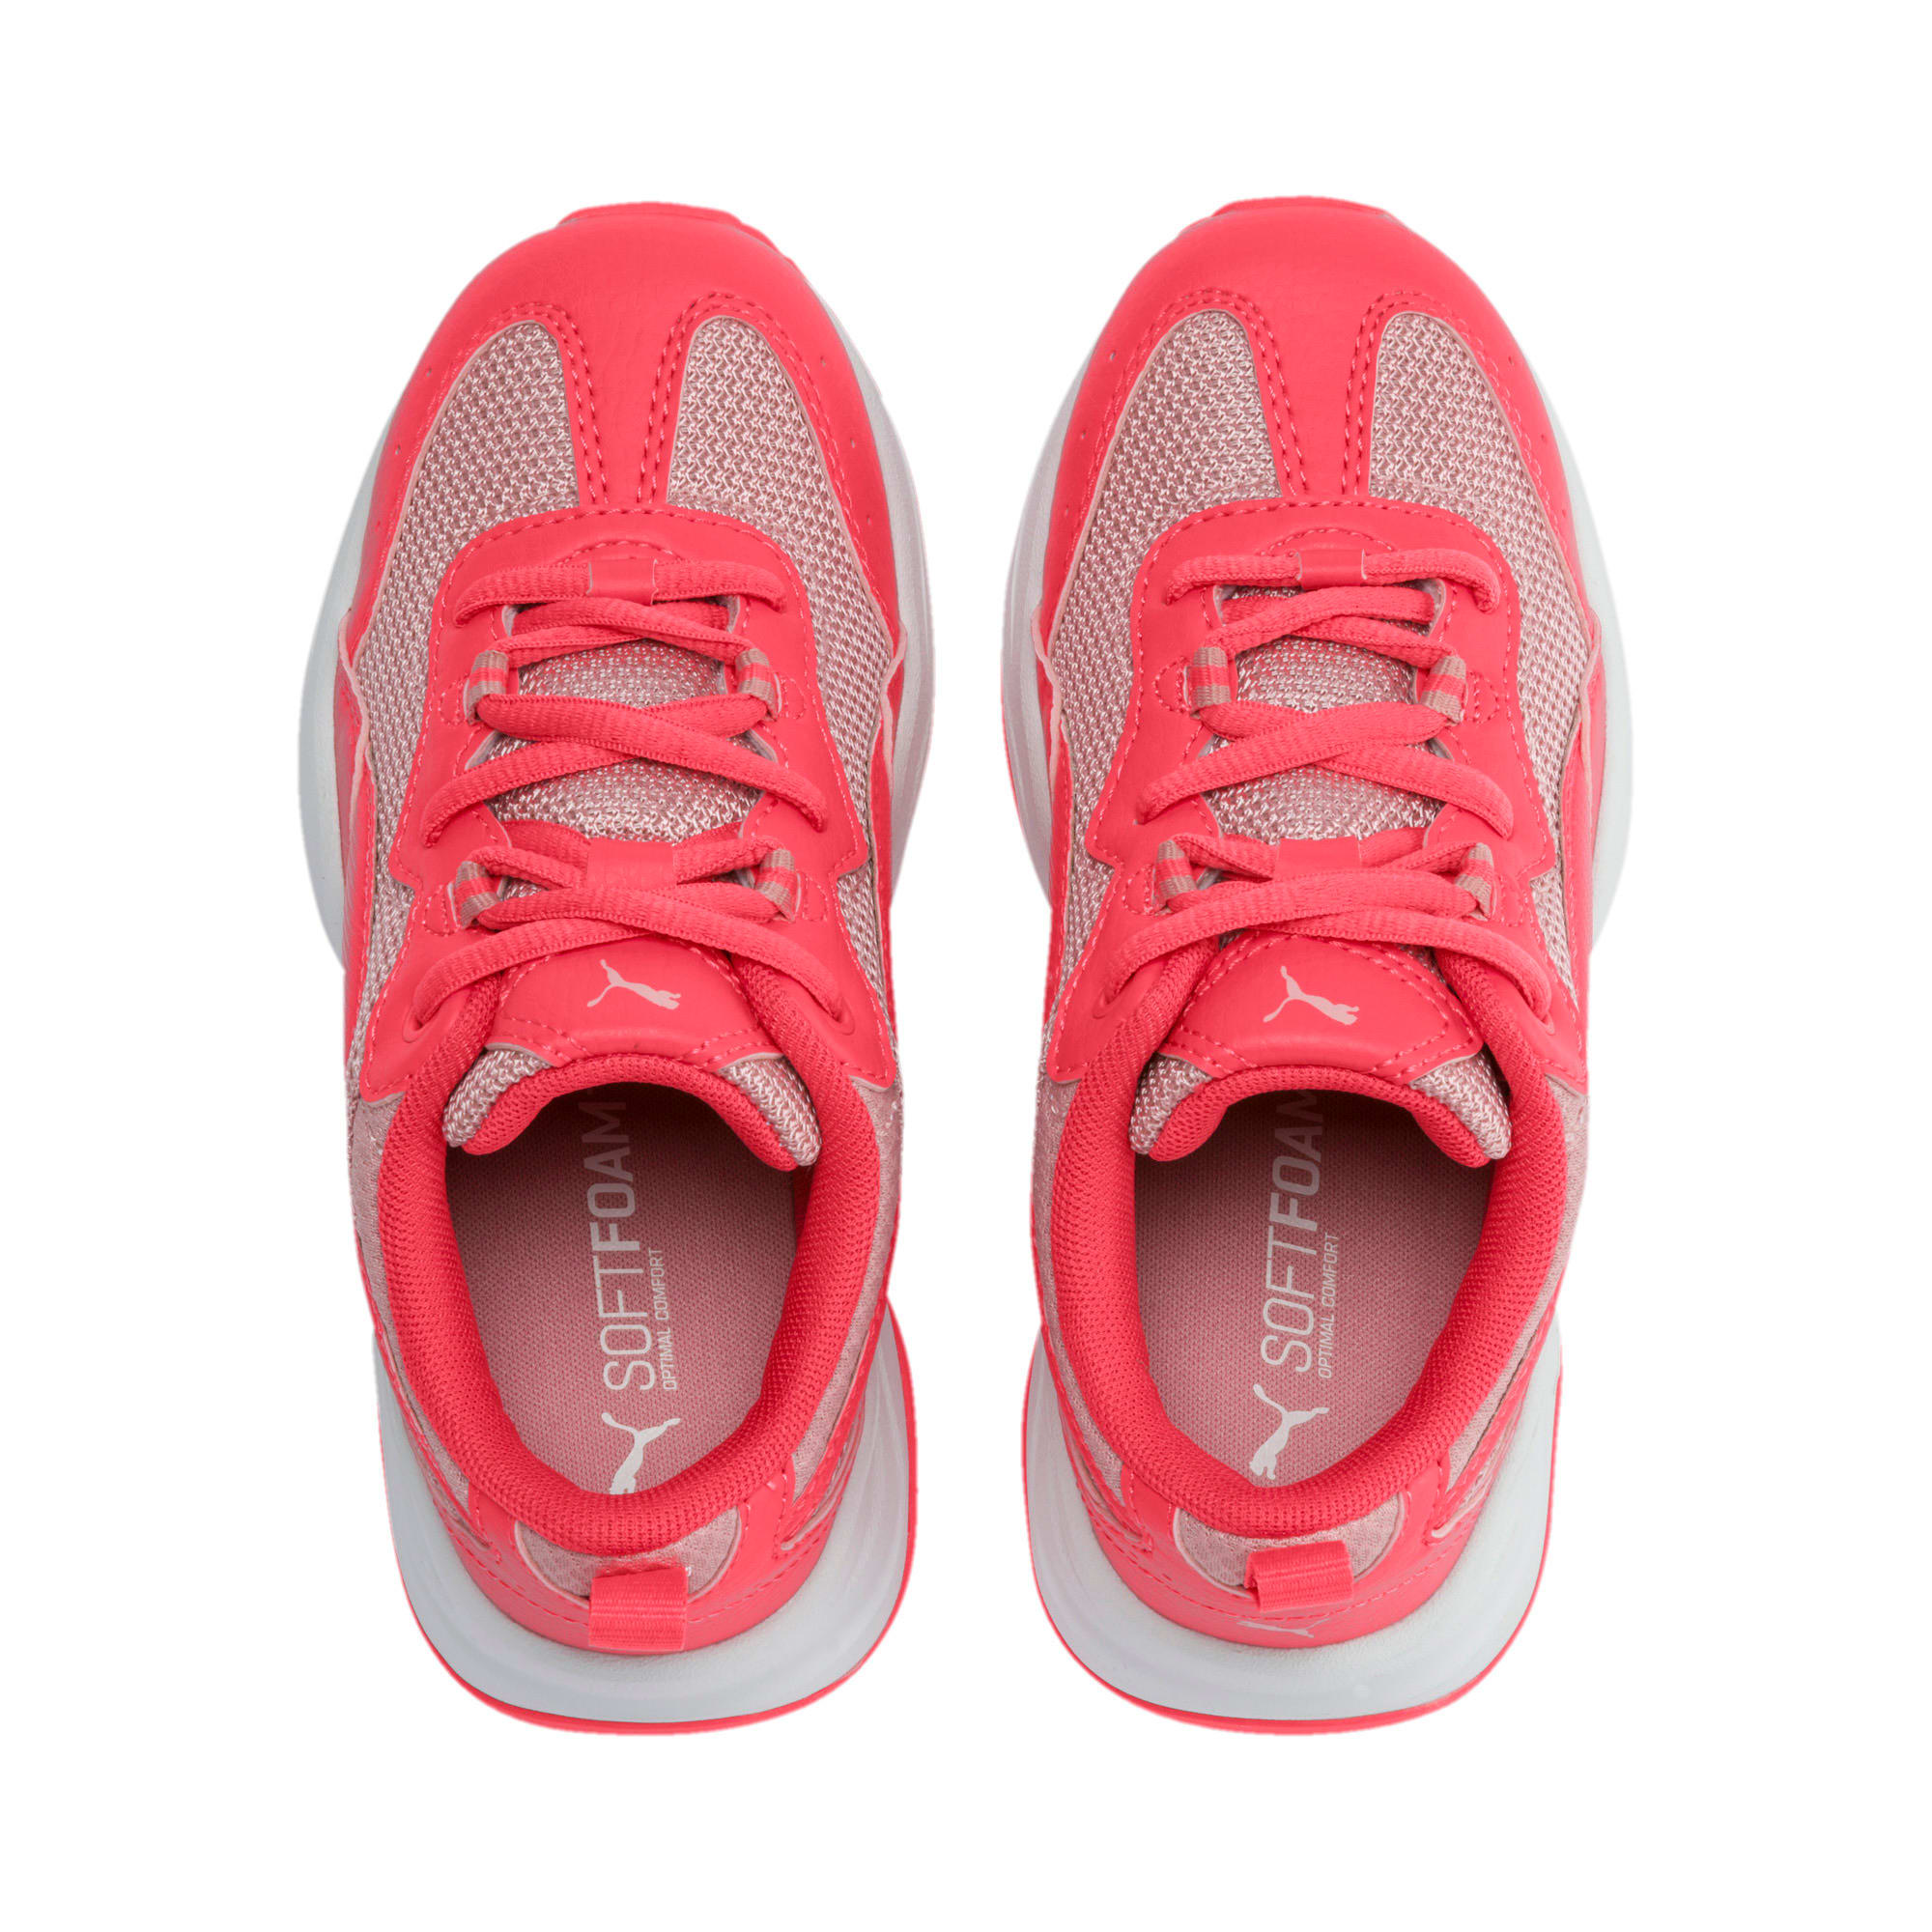 Thumbnail 6 of Cilia Kids' Trainers, Calypso Coral-B Rose-White, medium-IND